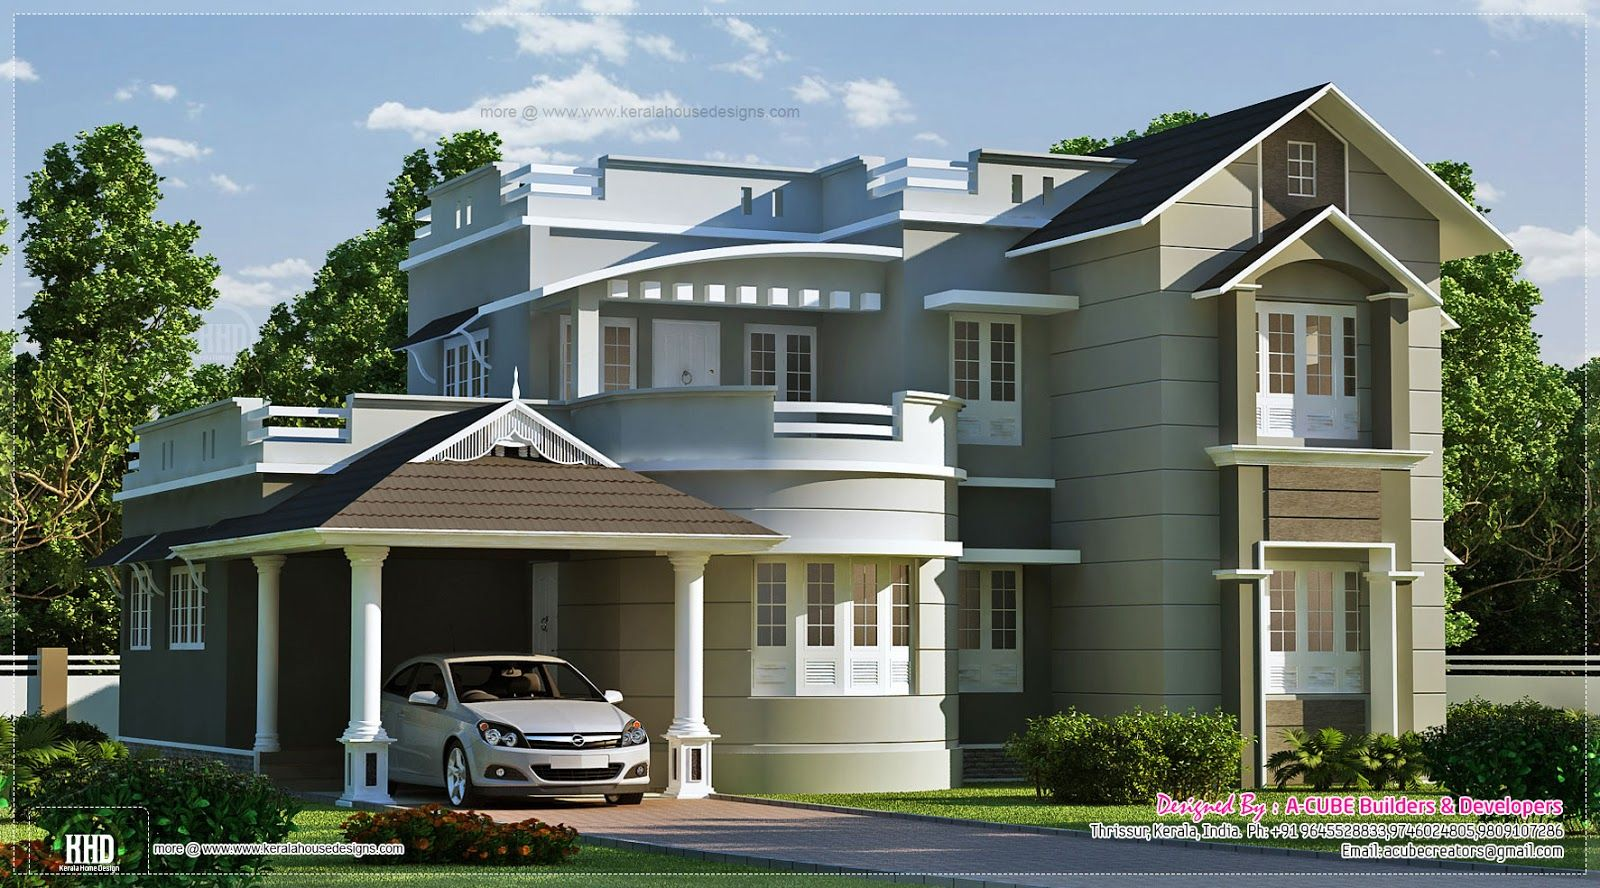 Enjoy Fresh Awesome New House Plans New Home Design Plans Design Ideas From  Jacqueline Jenkins To Renovate Your Dwelling.